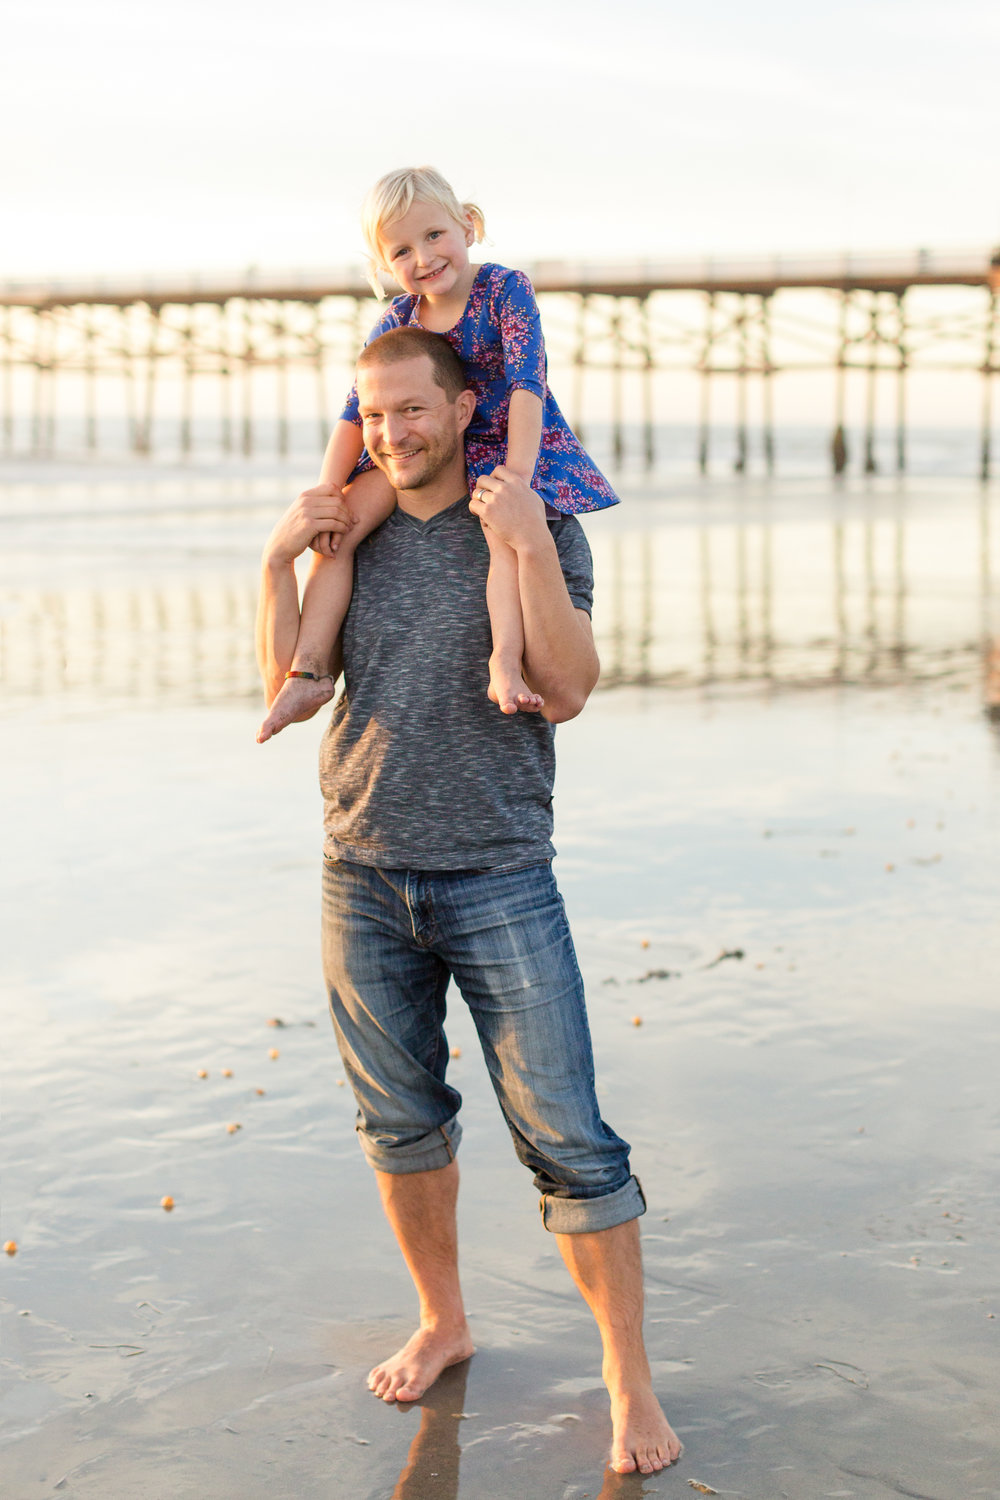 San Diego Family Photographer Beach Crystal Pier Christine Dammann Photography WS HF-16.jpg